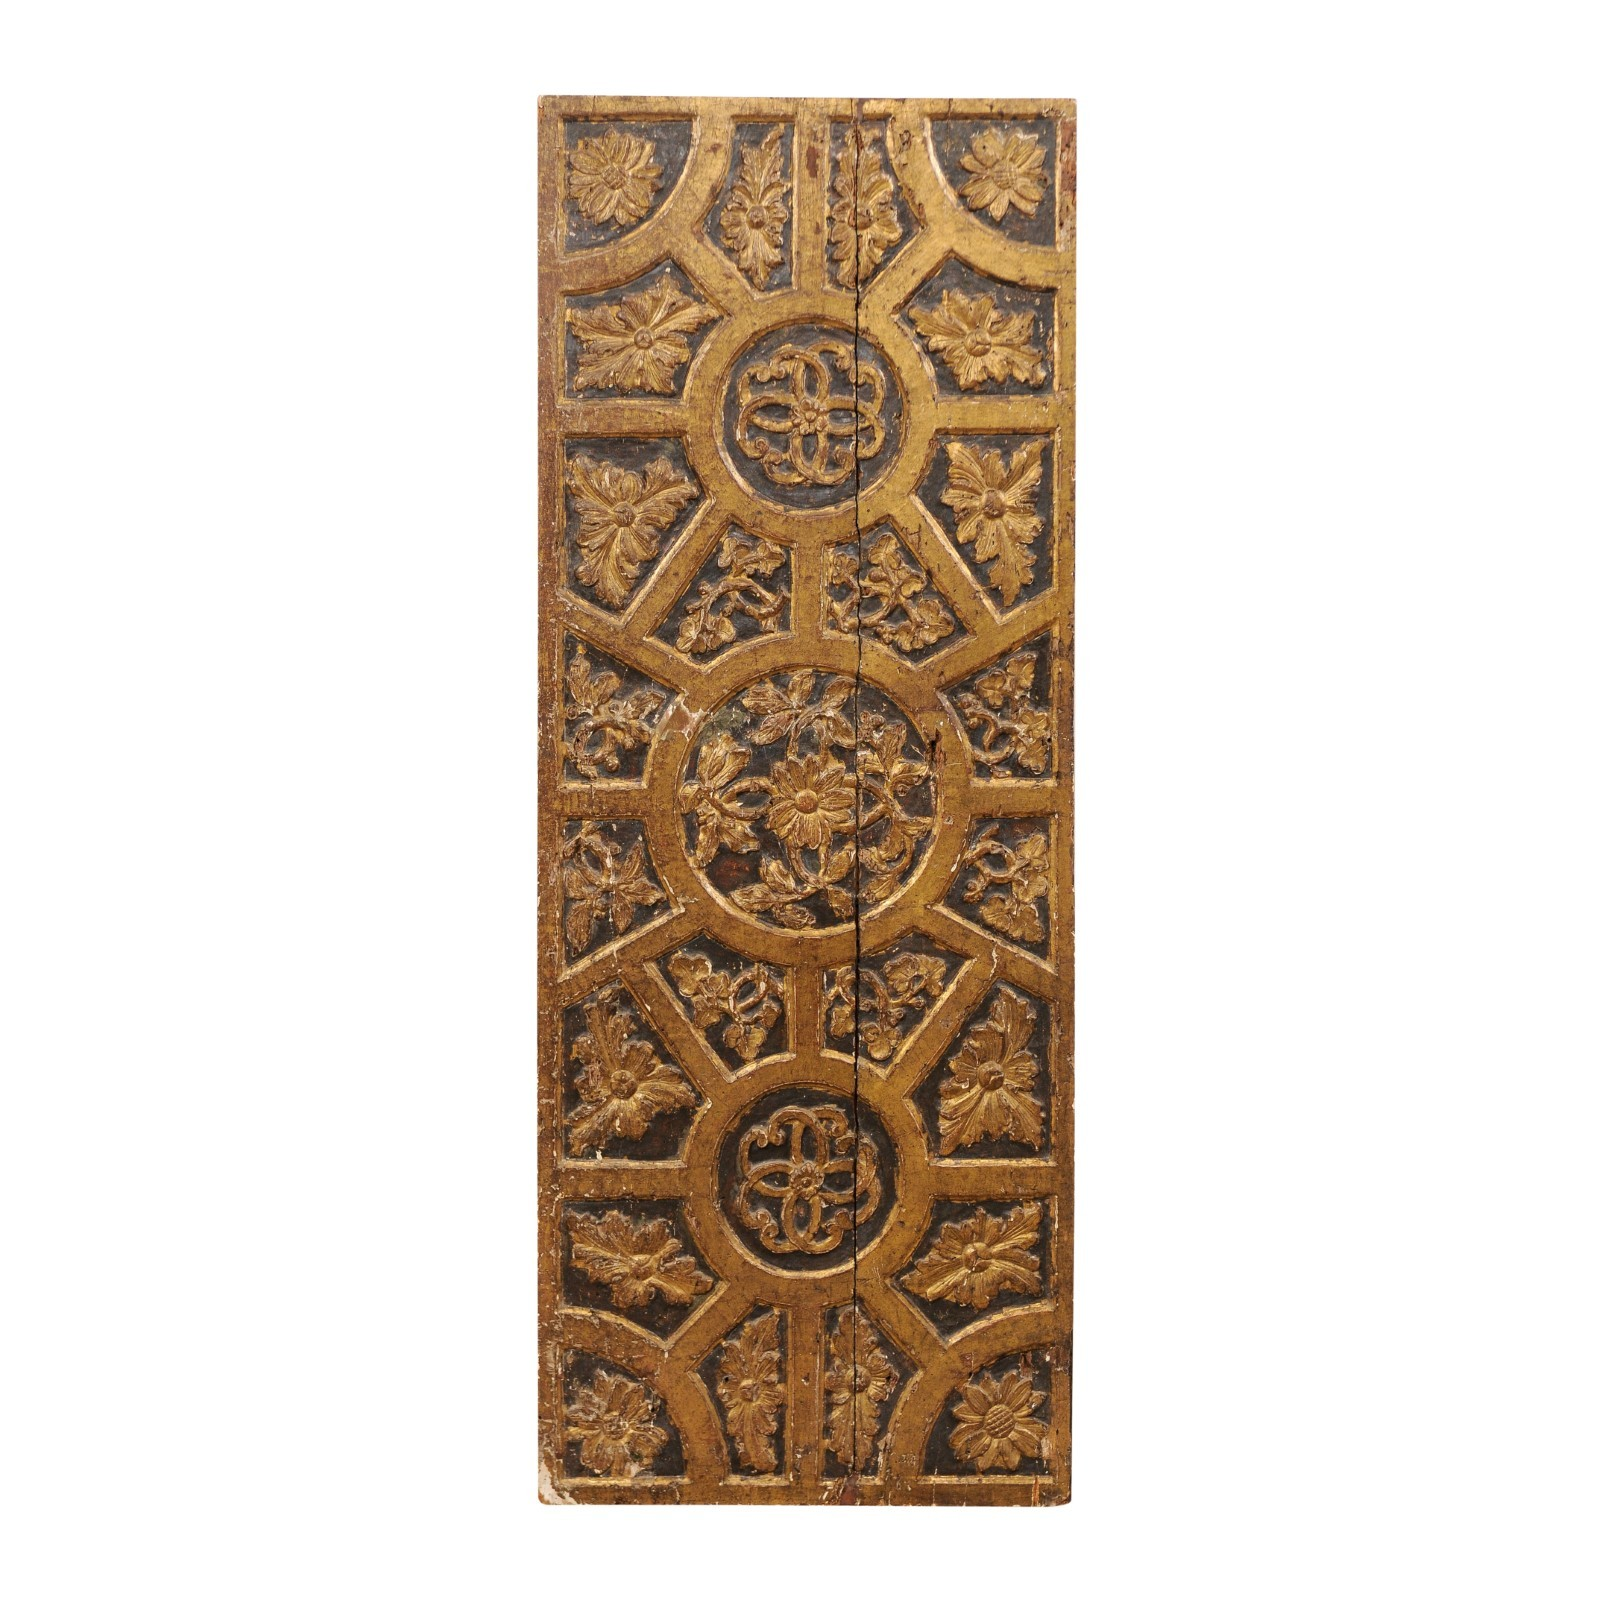 18th C. Italian Gilt & Carved Panel, 5.5 ft